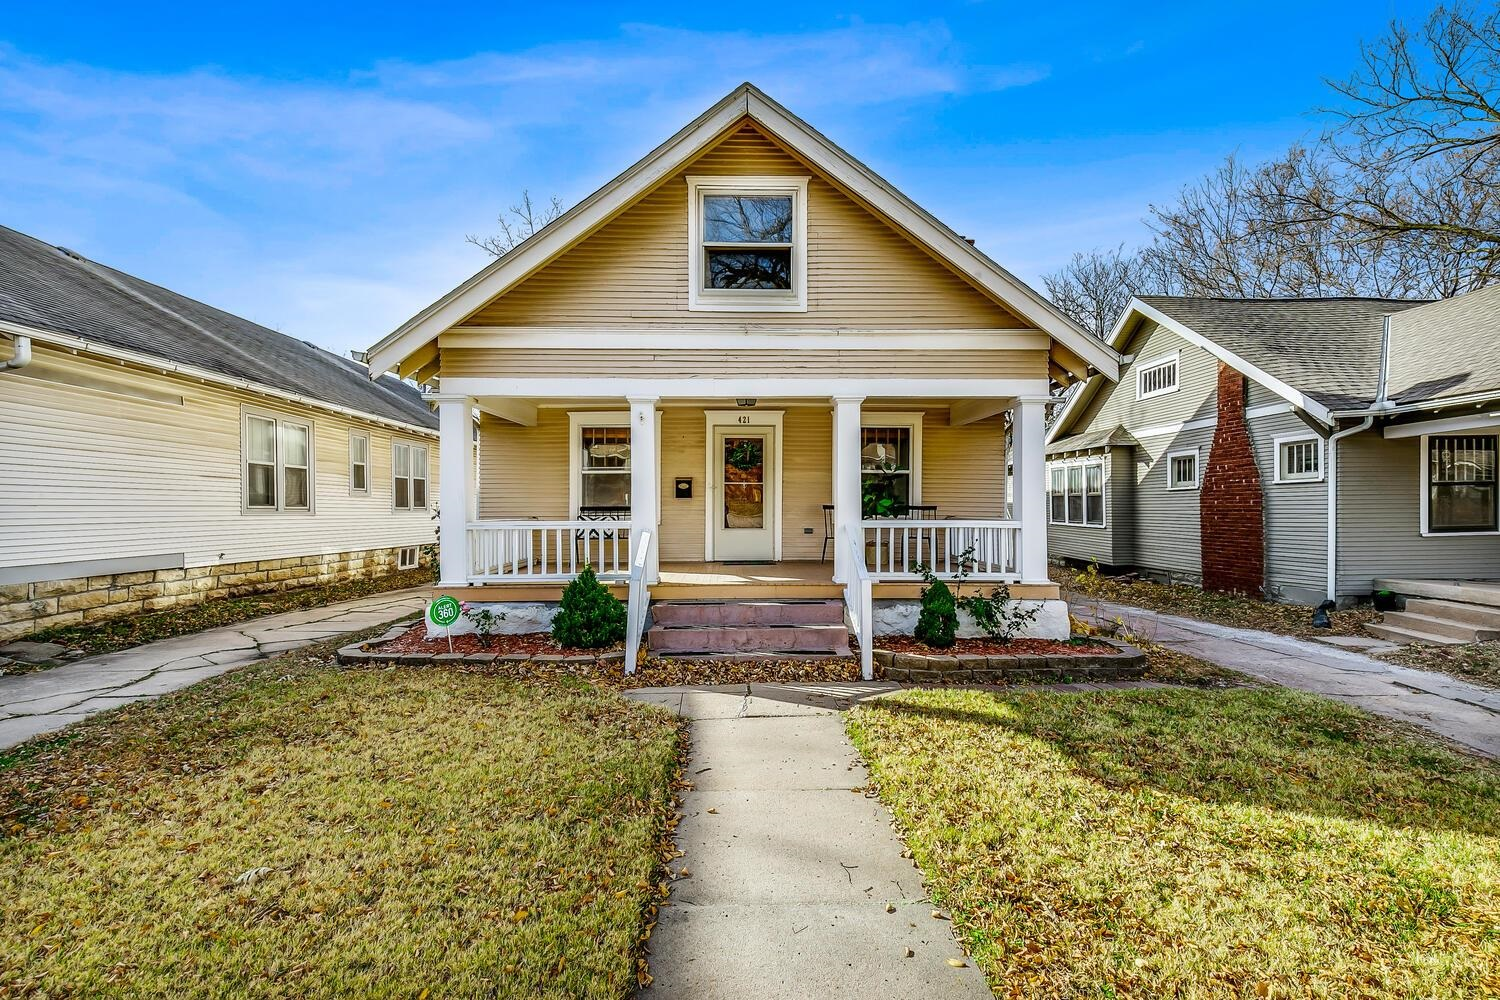 COLLEGE HILL BUNGALOW FEATURES ORIGINAL WOOD WORK, HARDWOOD FLOORS, AND TALL CEILINGS. WELCOMING LIV